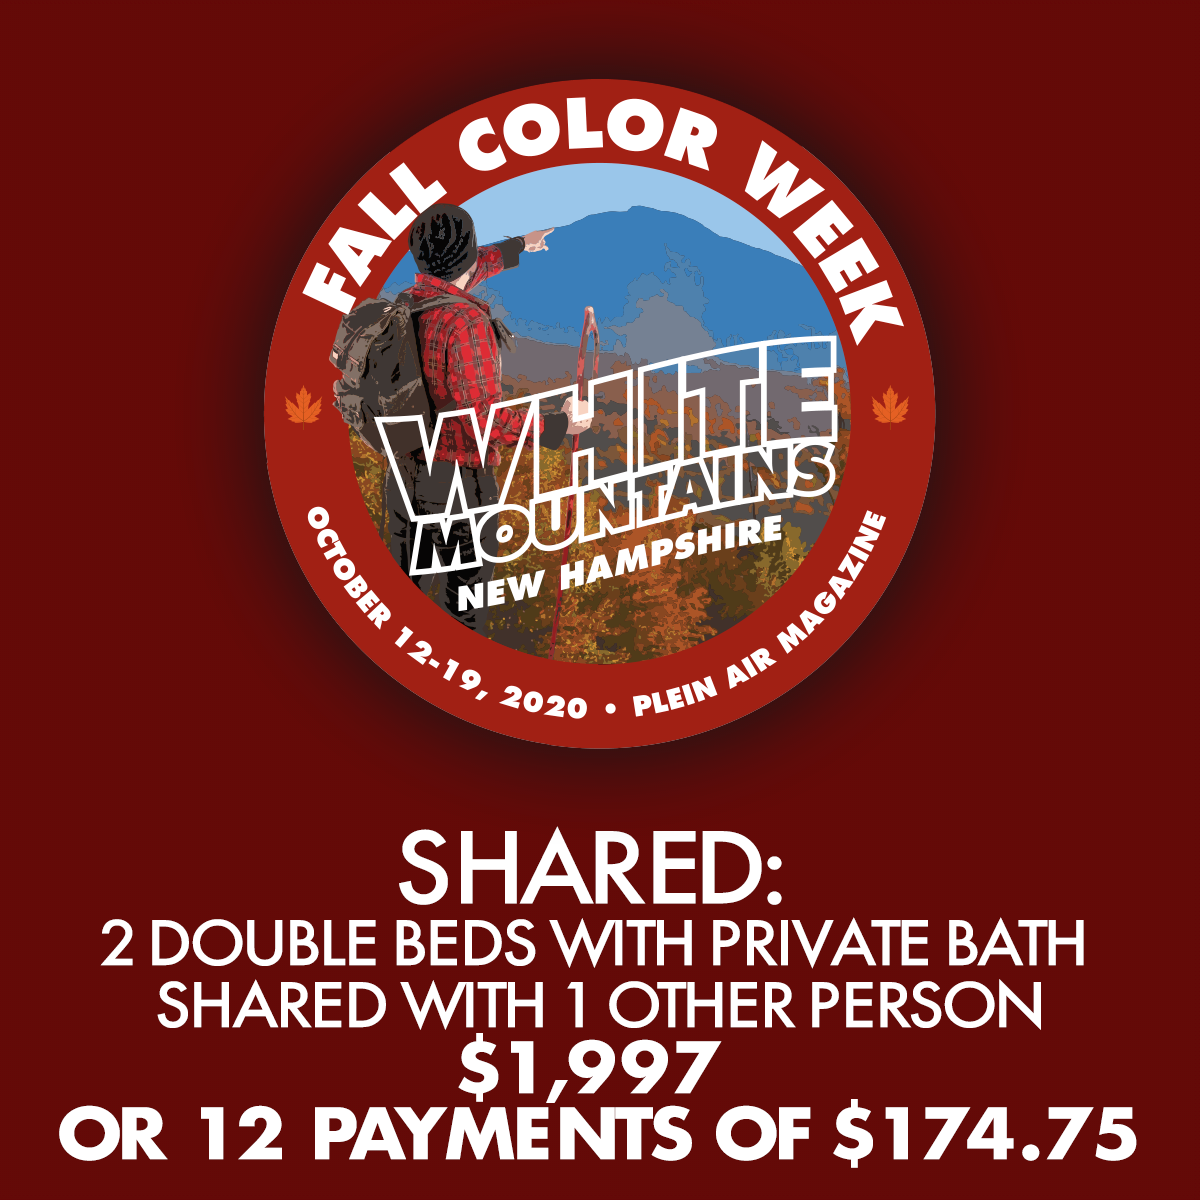 2020 Fall Color Week - Shared: 2 Double Beds with Private Bath Shared with 1 Other Person ** 12 PAYMENT PLAN ** - FCW19